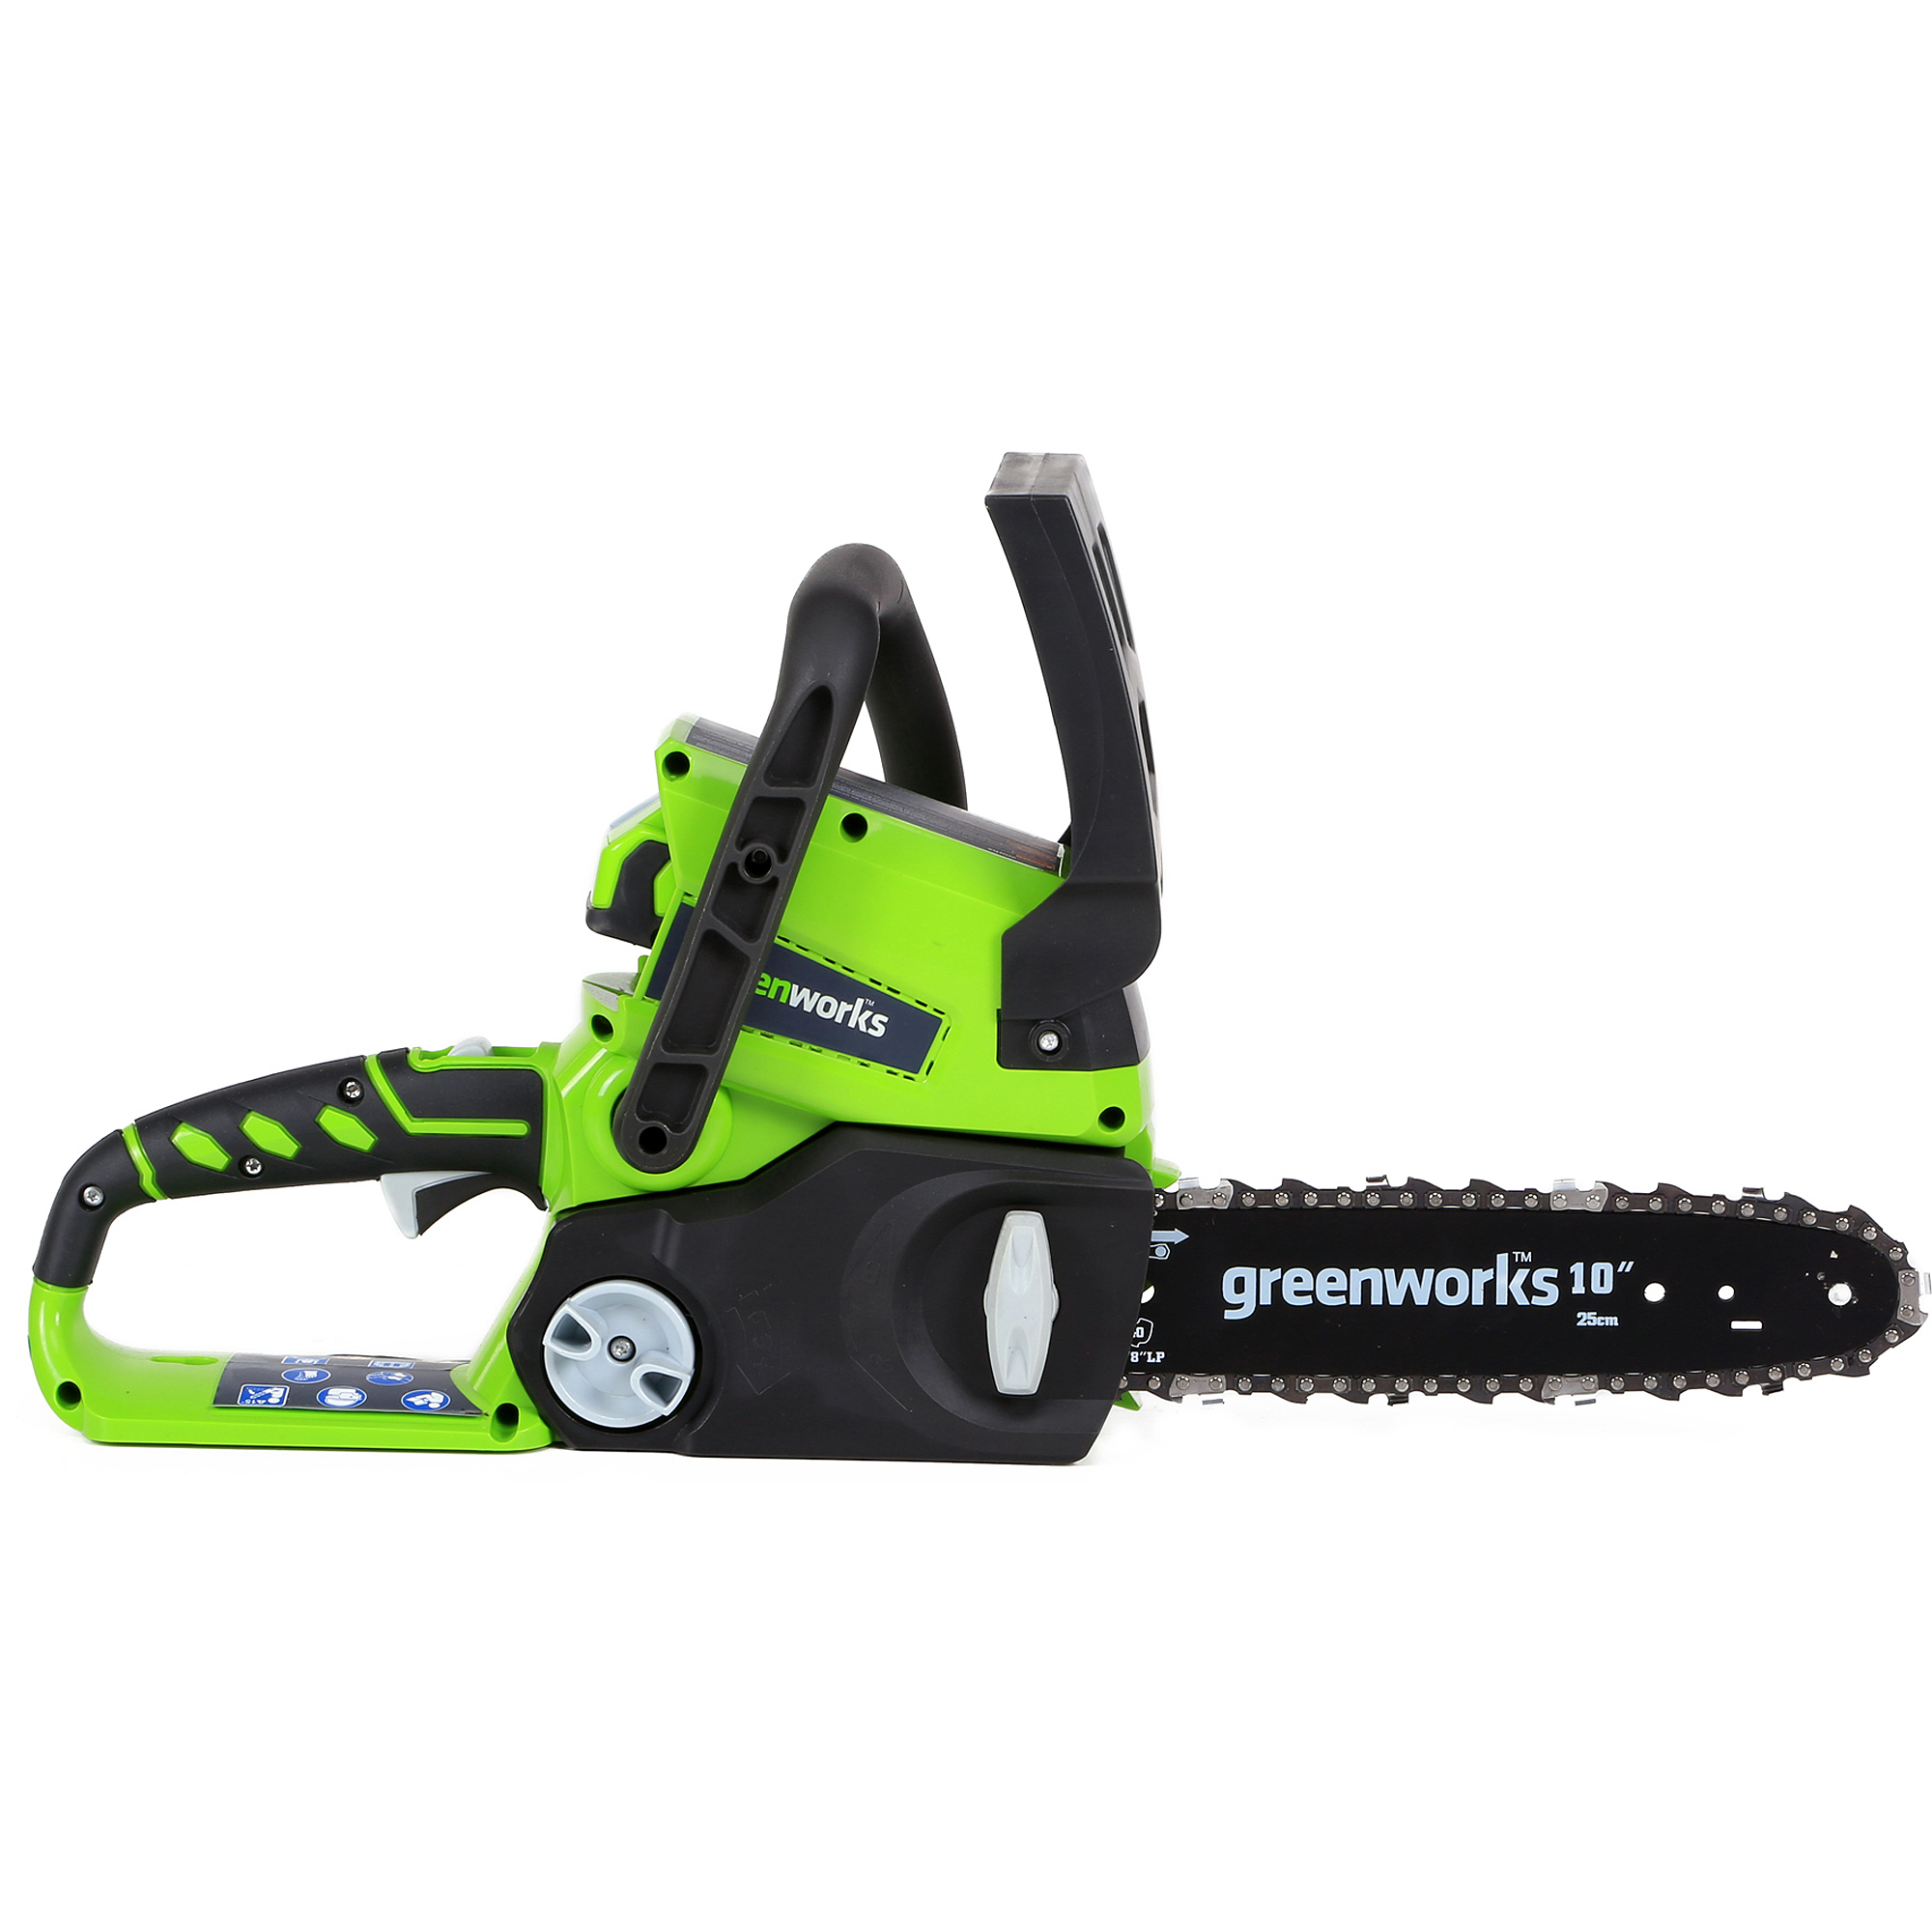 "GreenWorks G-24 10"" 24V Cordless Chainsaw, Tool Only"